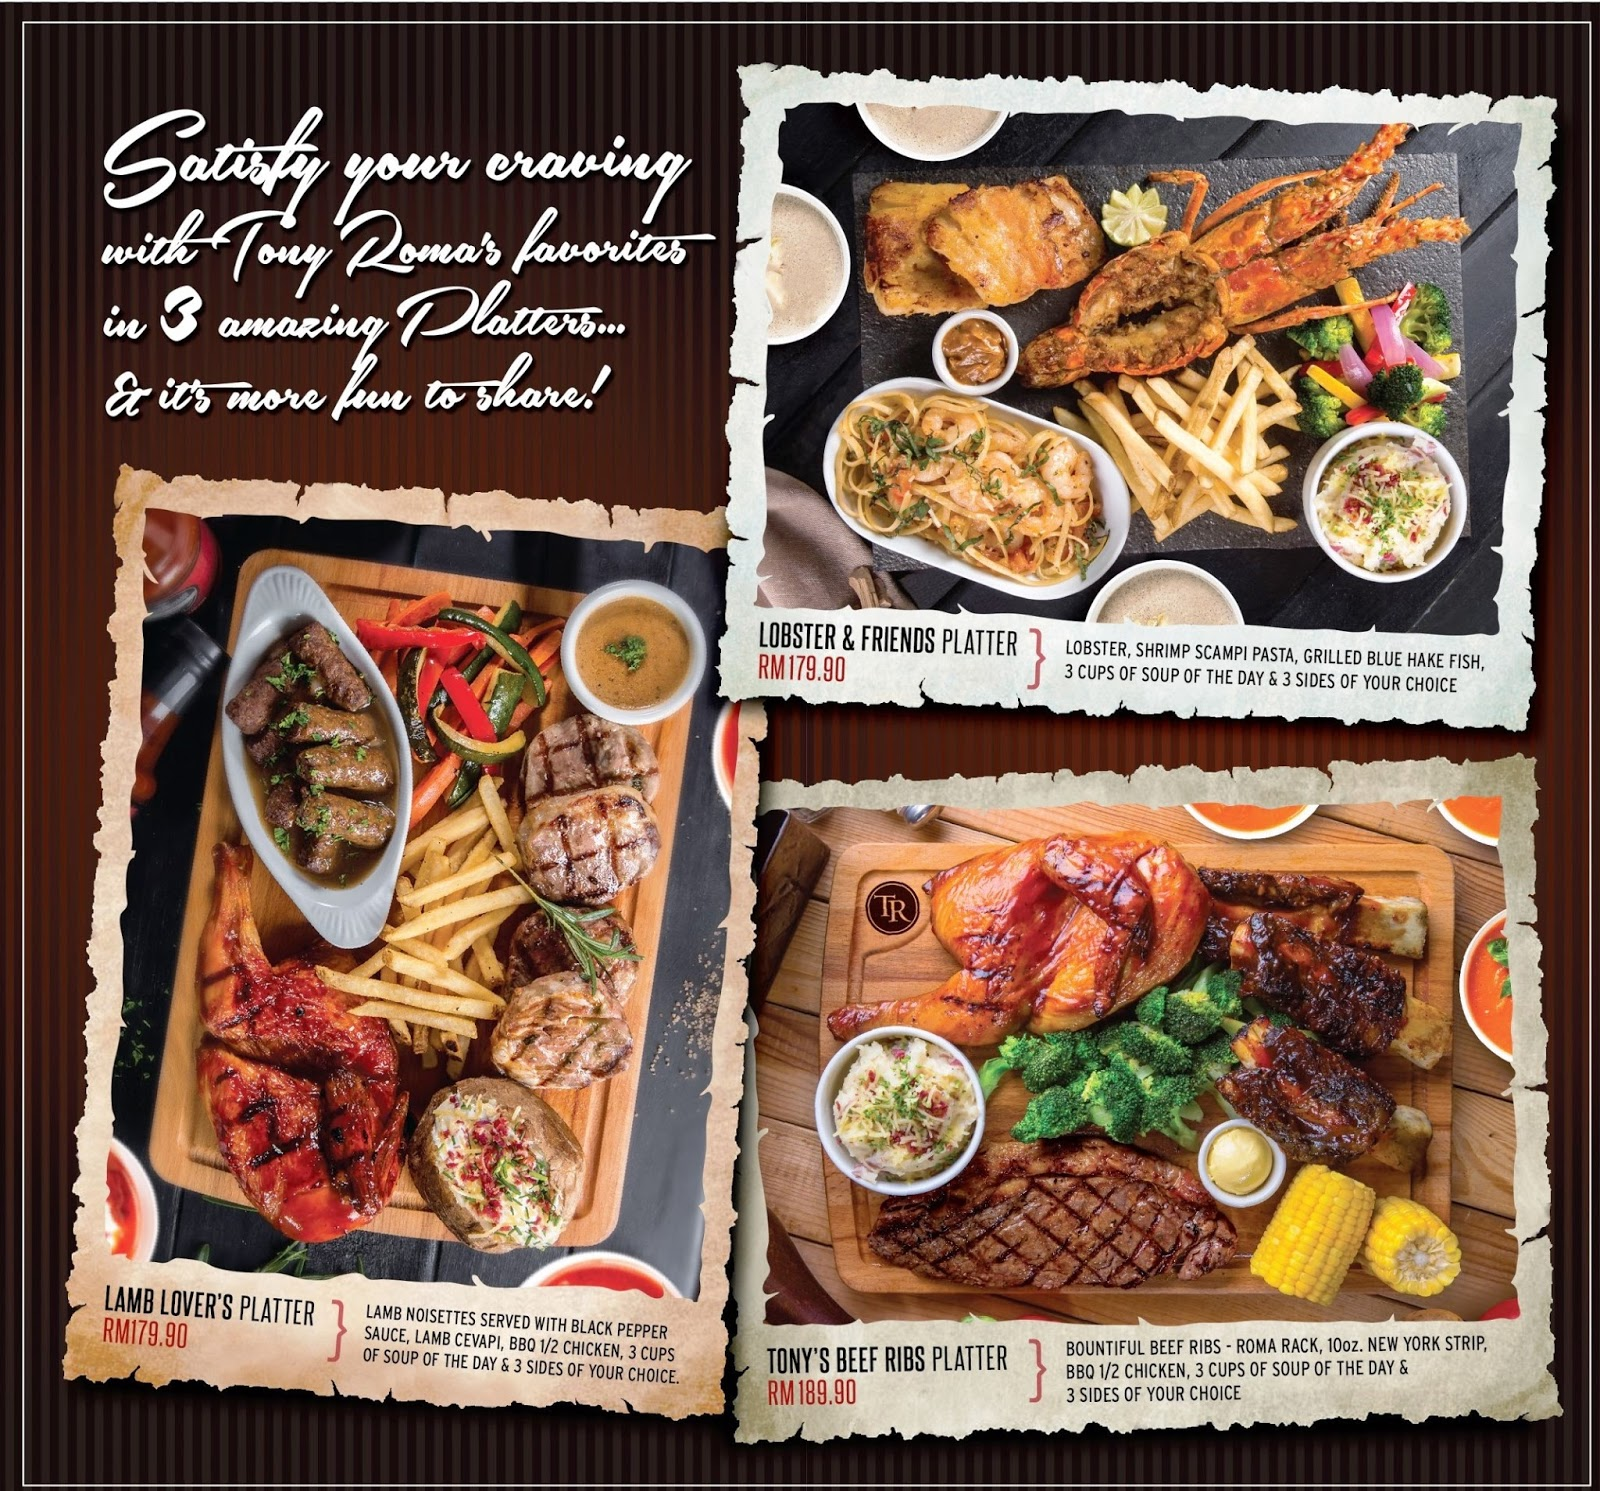 Follow Me To Eat La Malaysian Food Blog Tony Roma S Ribs Seafood Steak Perfect Platters For Sharing